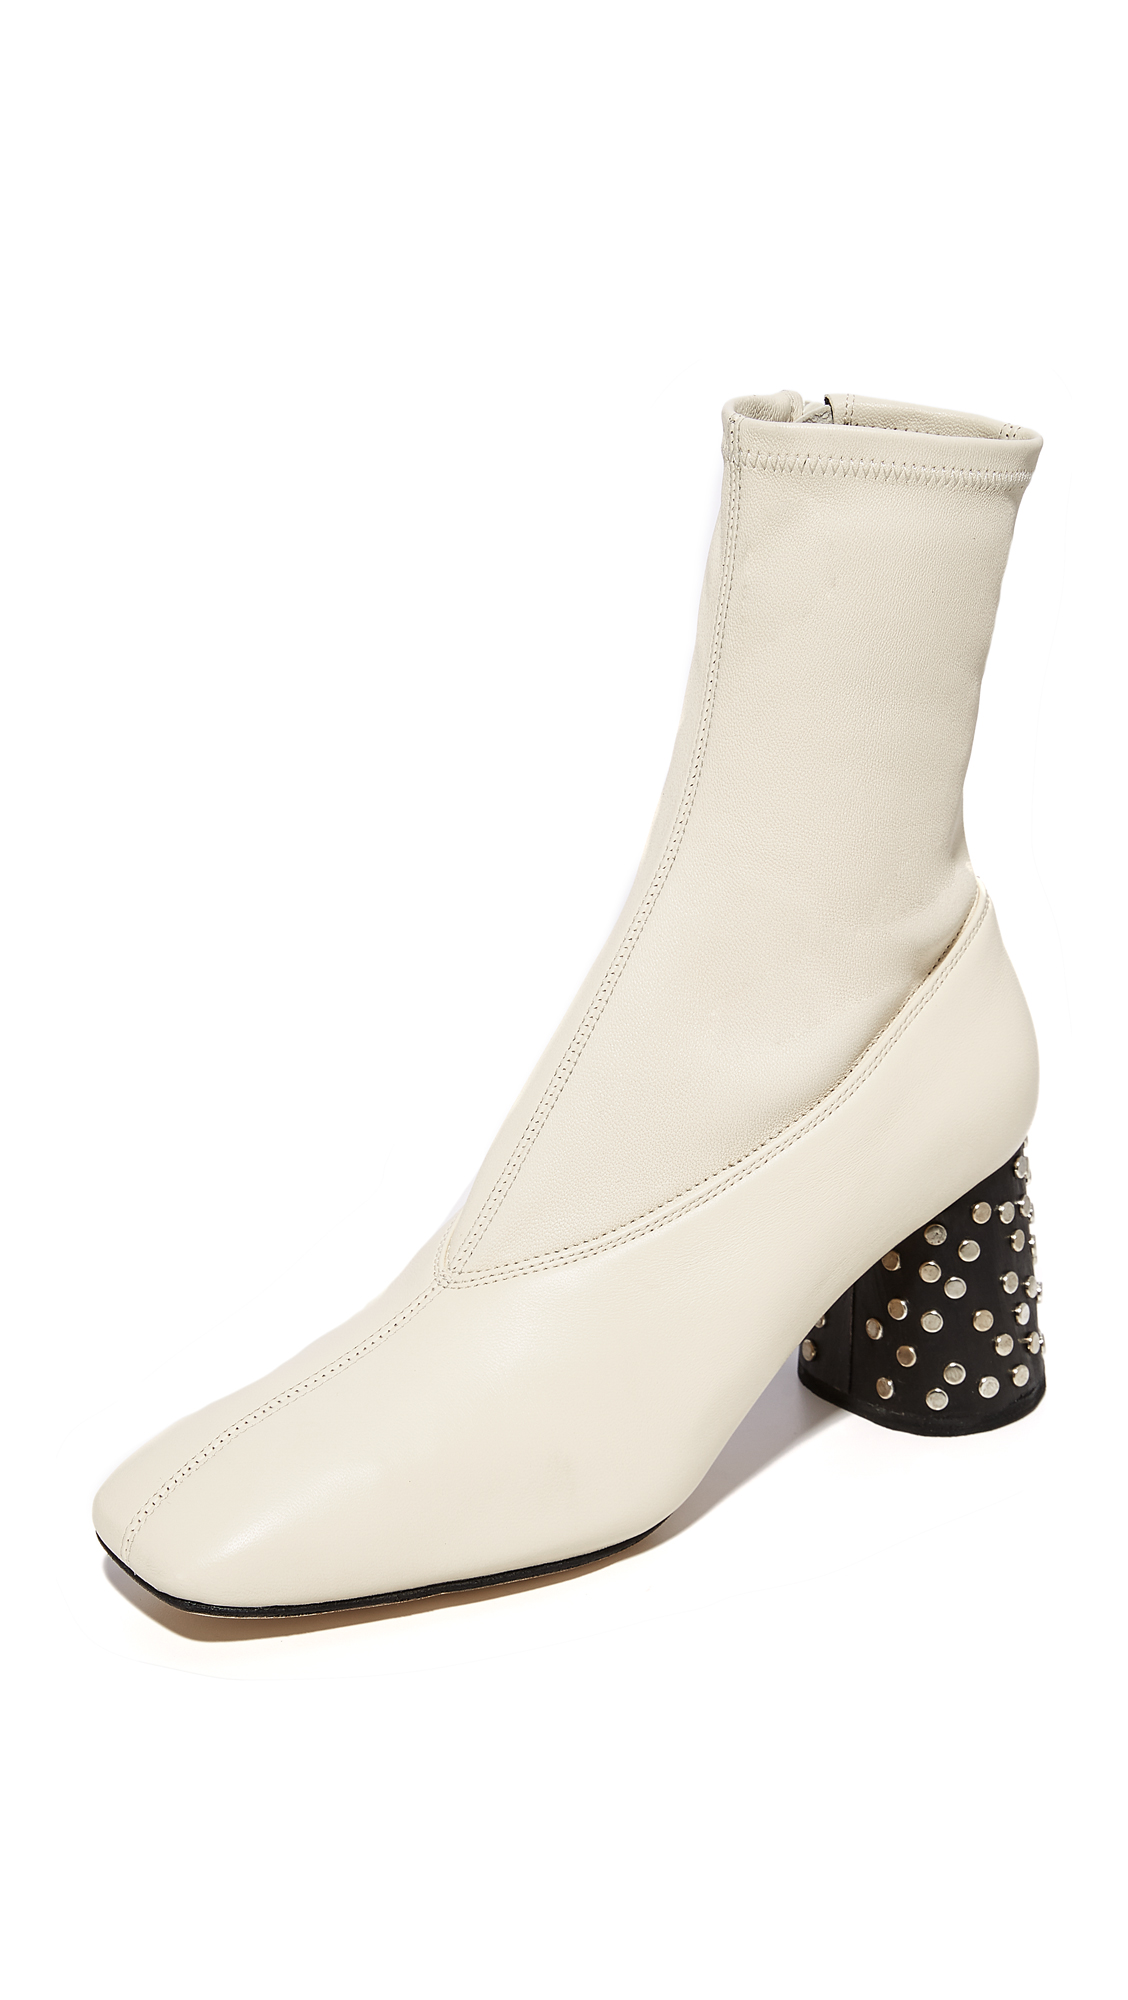 Helmut Lang Studded Heel Mid Calf Stretch Booties - Ivory